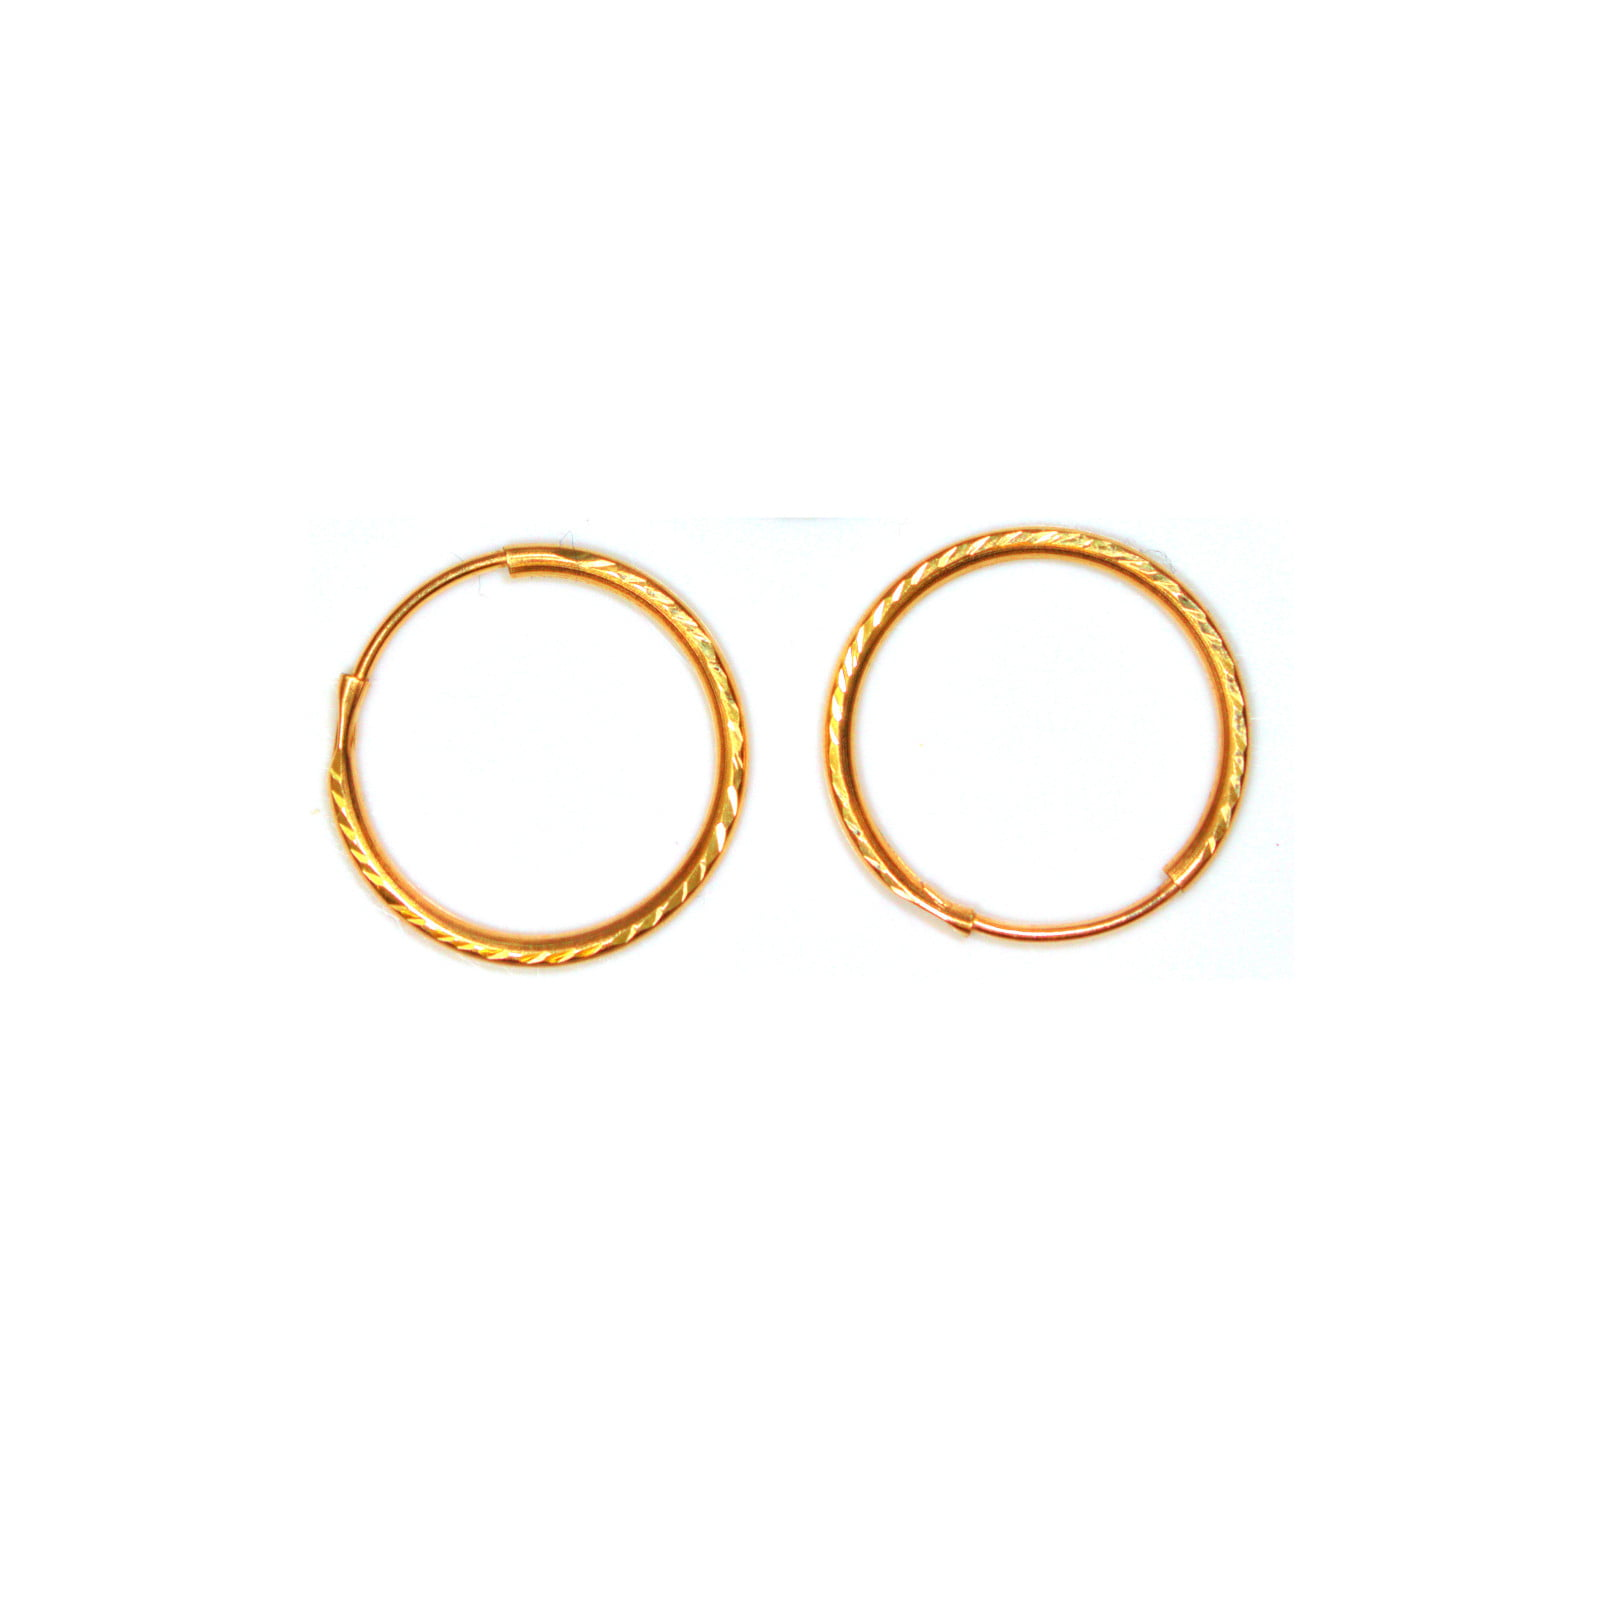 Gold hoop earrings 14mm medium weight diamond cut